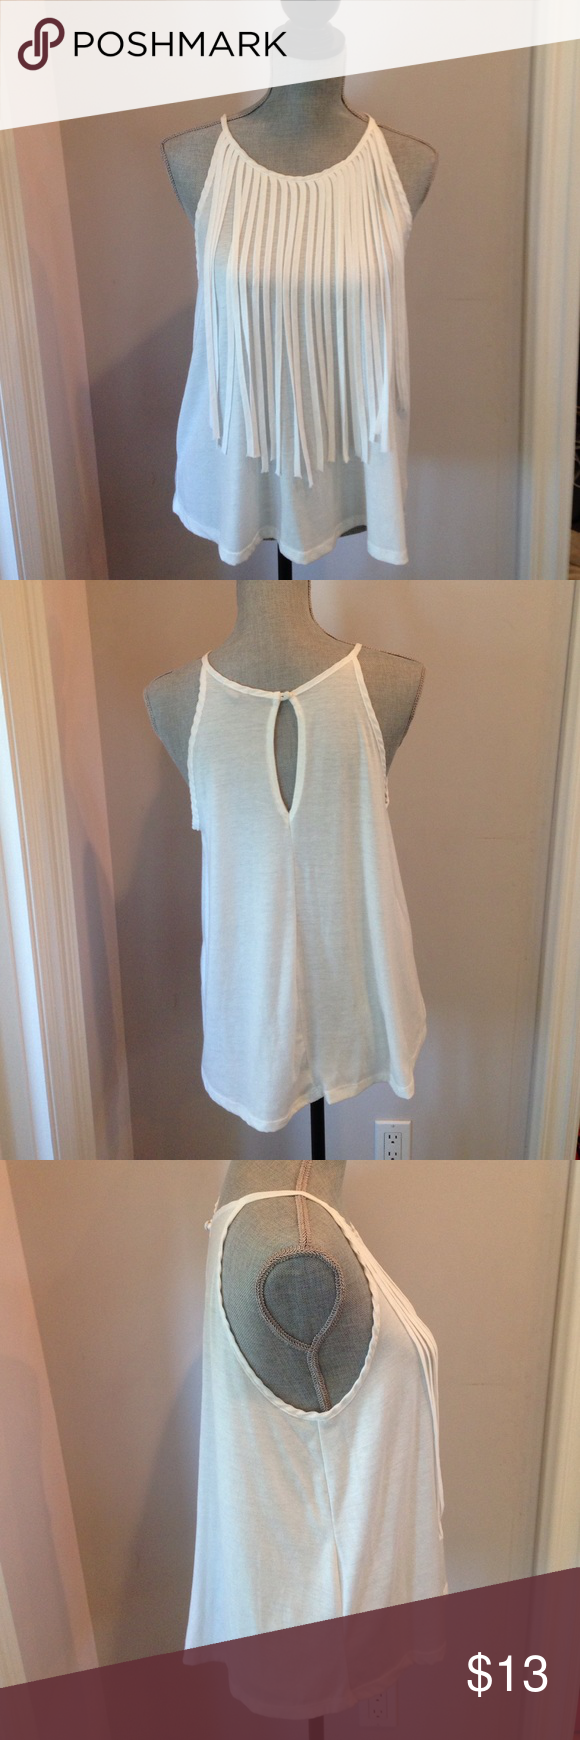 Flowy white fridge tank top This flowy tank top is perfect for any occasion. The tassels make the shirt playful. Never worn but without tags. 72% polyester 25% rayon and 3% spandex. Urban Outfitters Tops Tank Tops